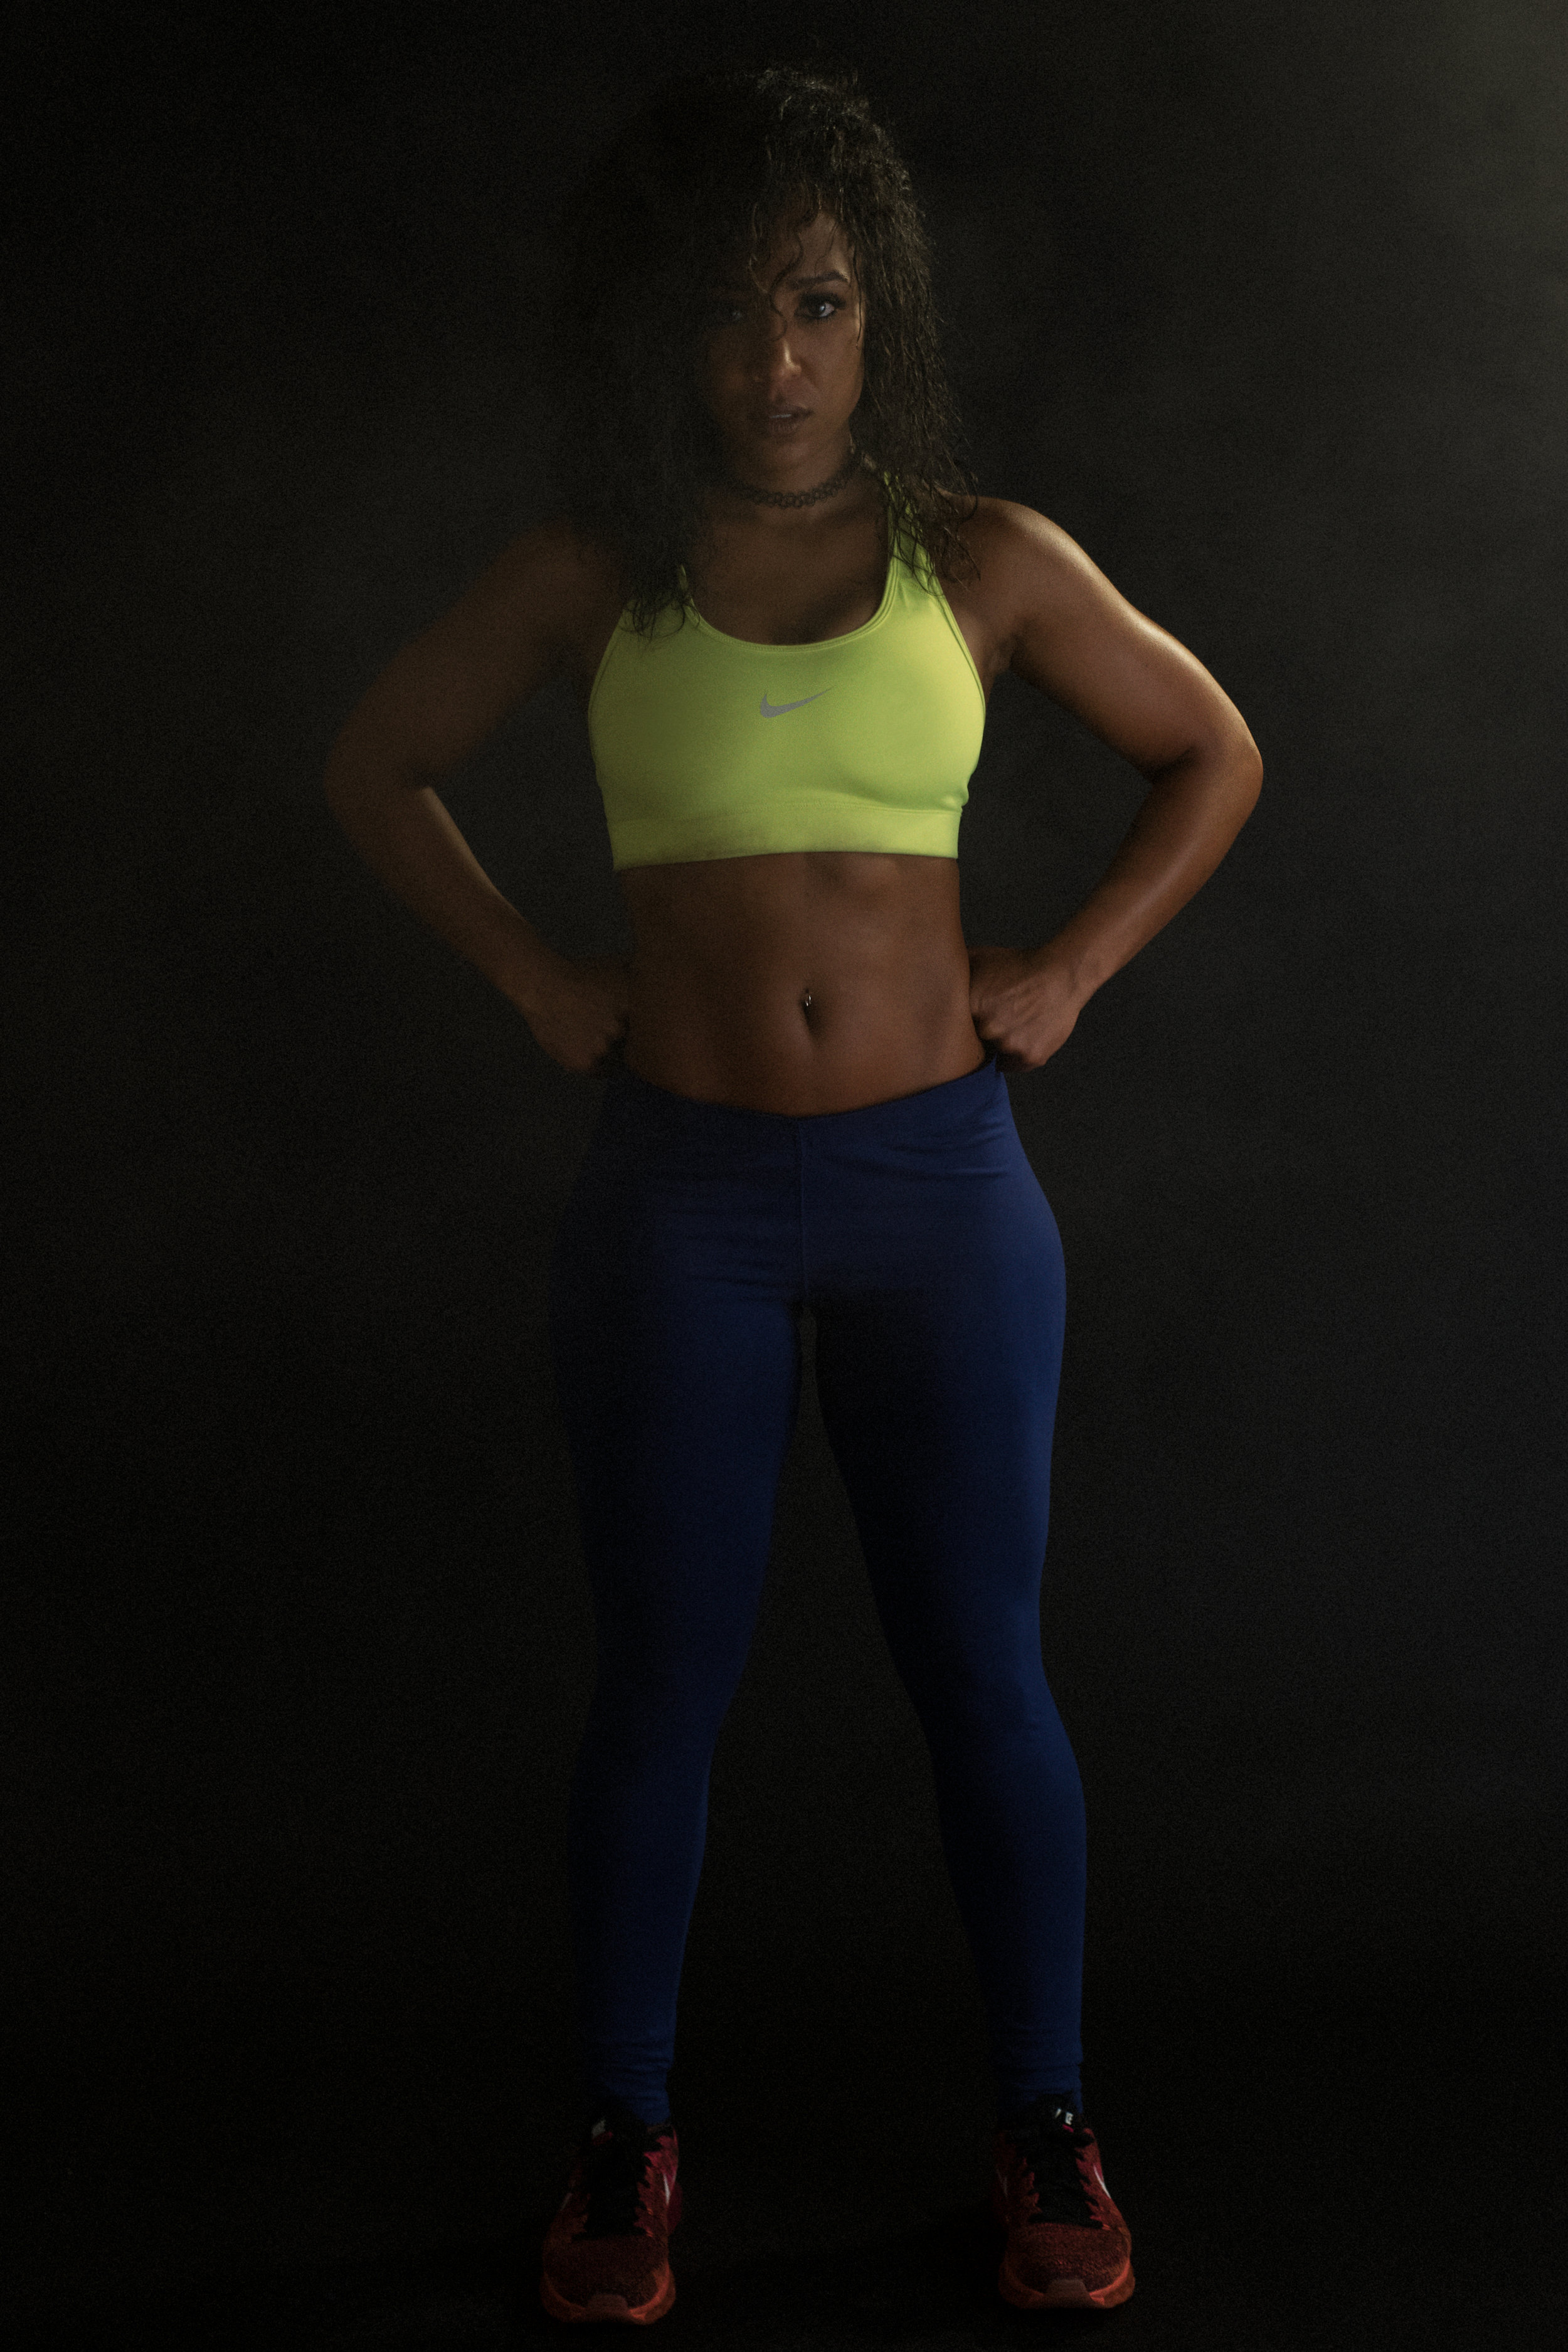 vanessa-nike-outfit.jpg